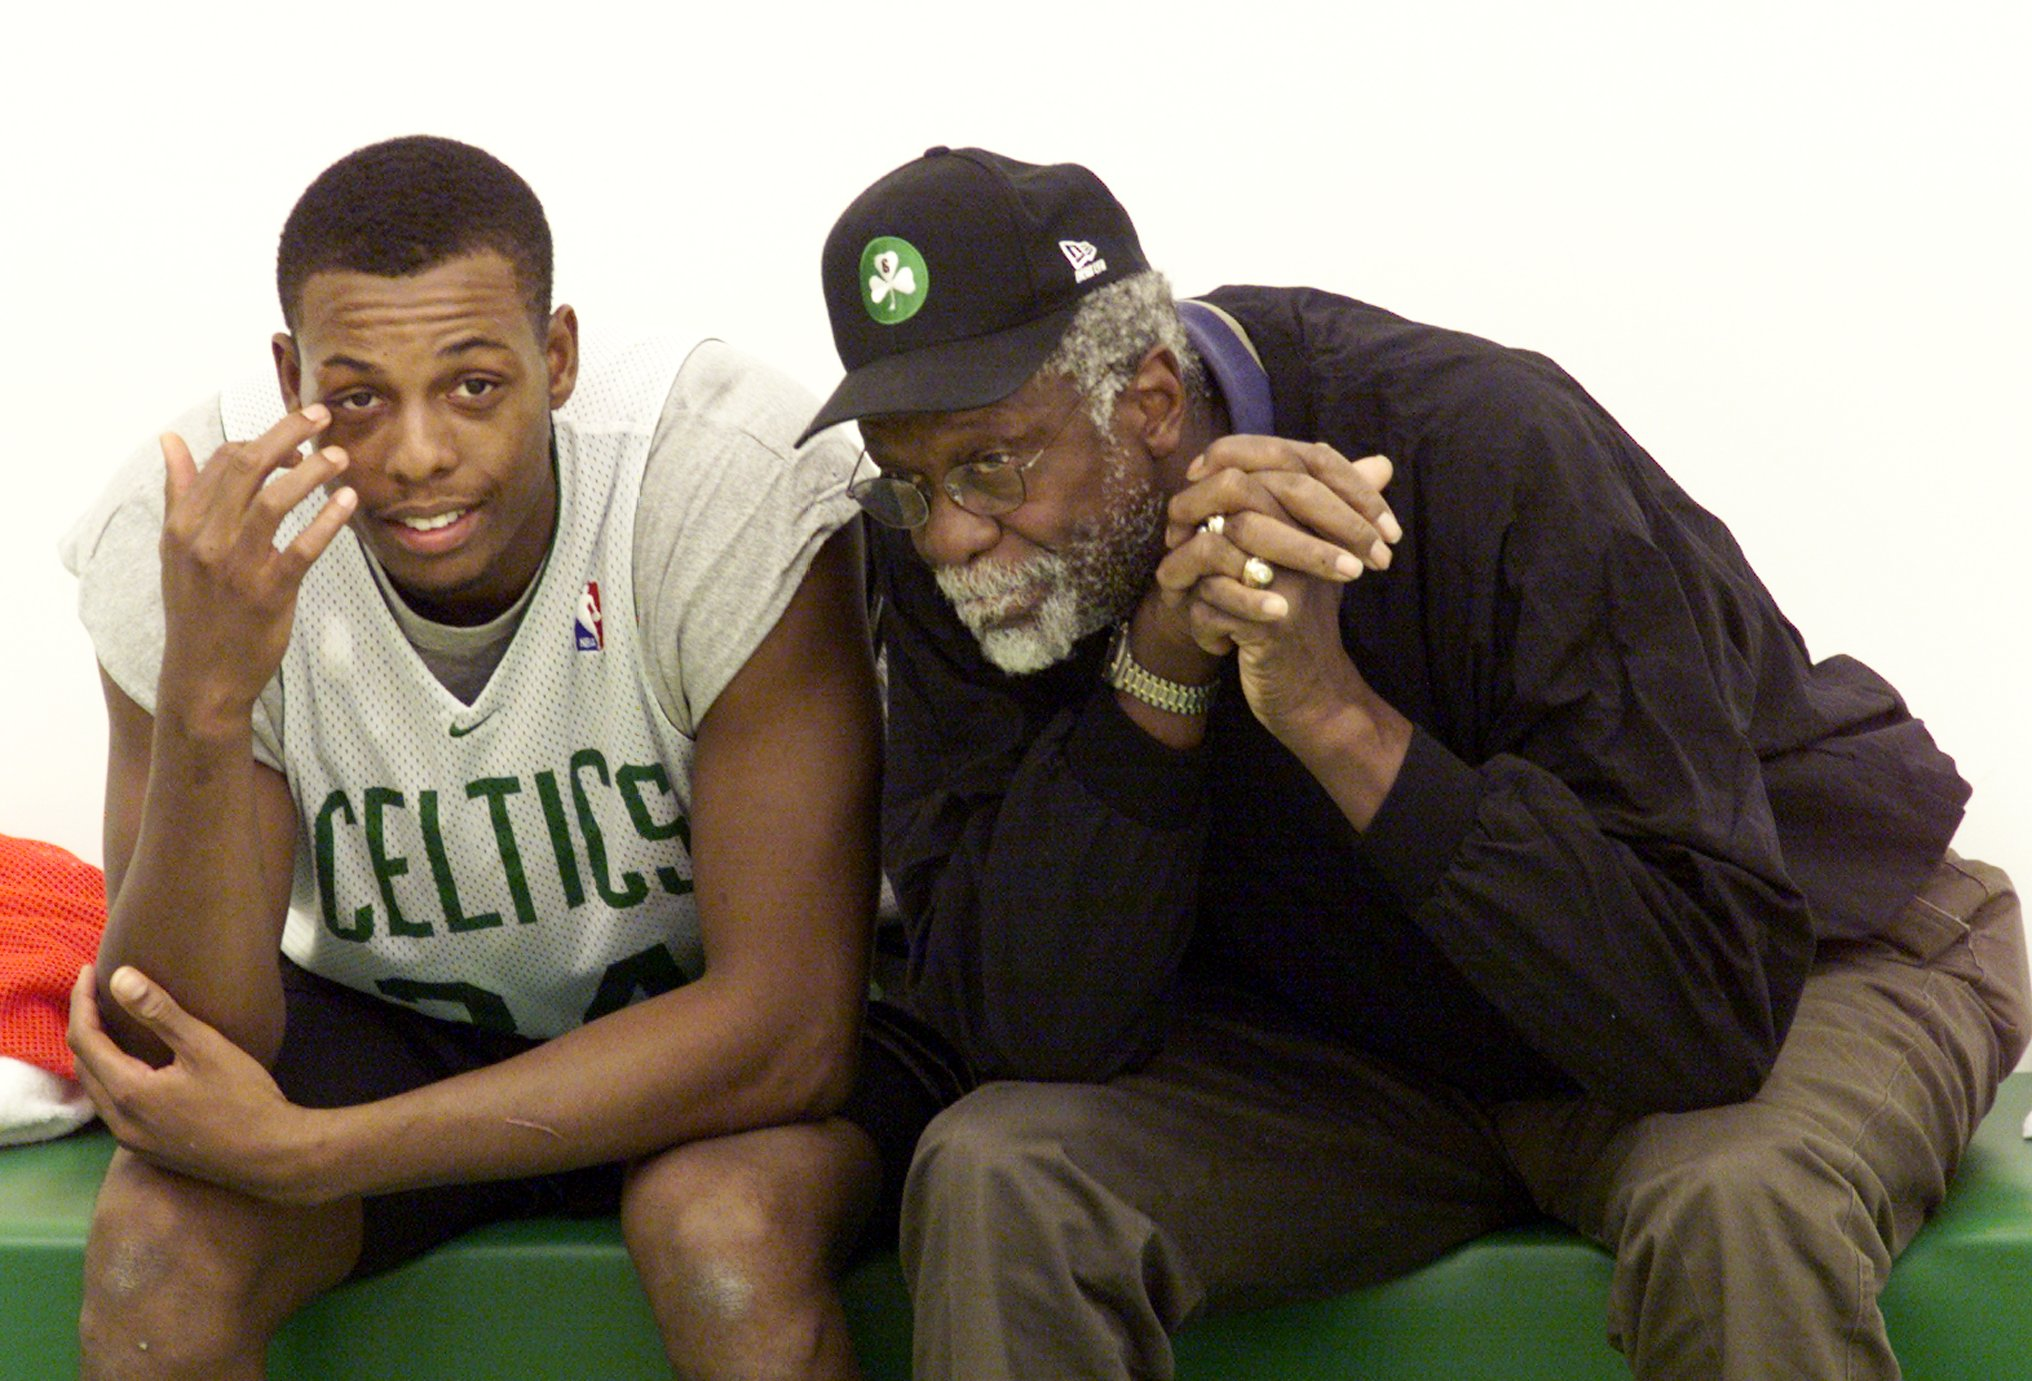 bostonglobe.com - Adam Himmelsbach - We held an all-time Celtics draft. Can you guess who went No. 1?